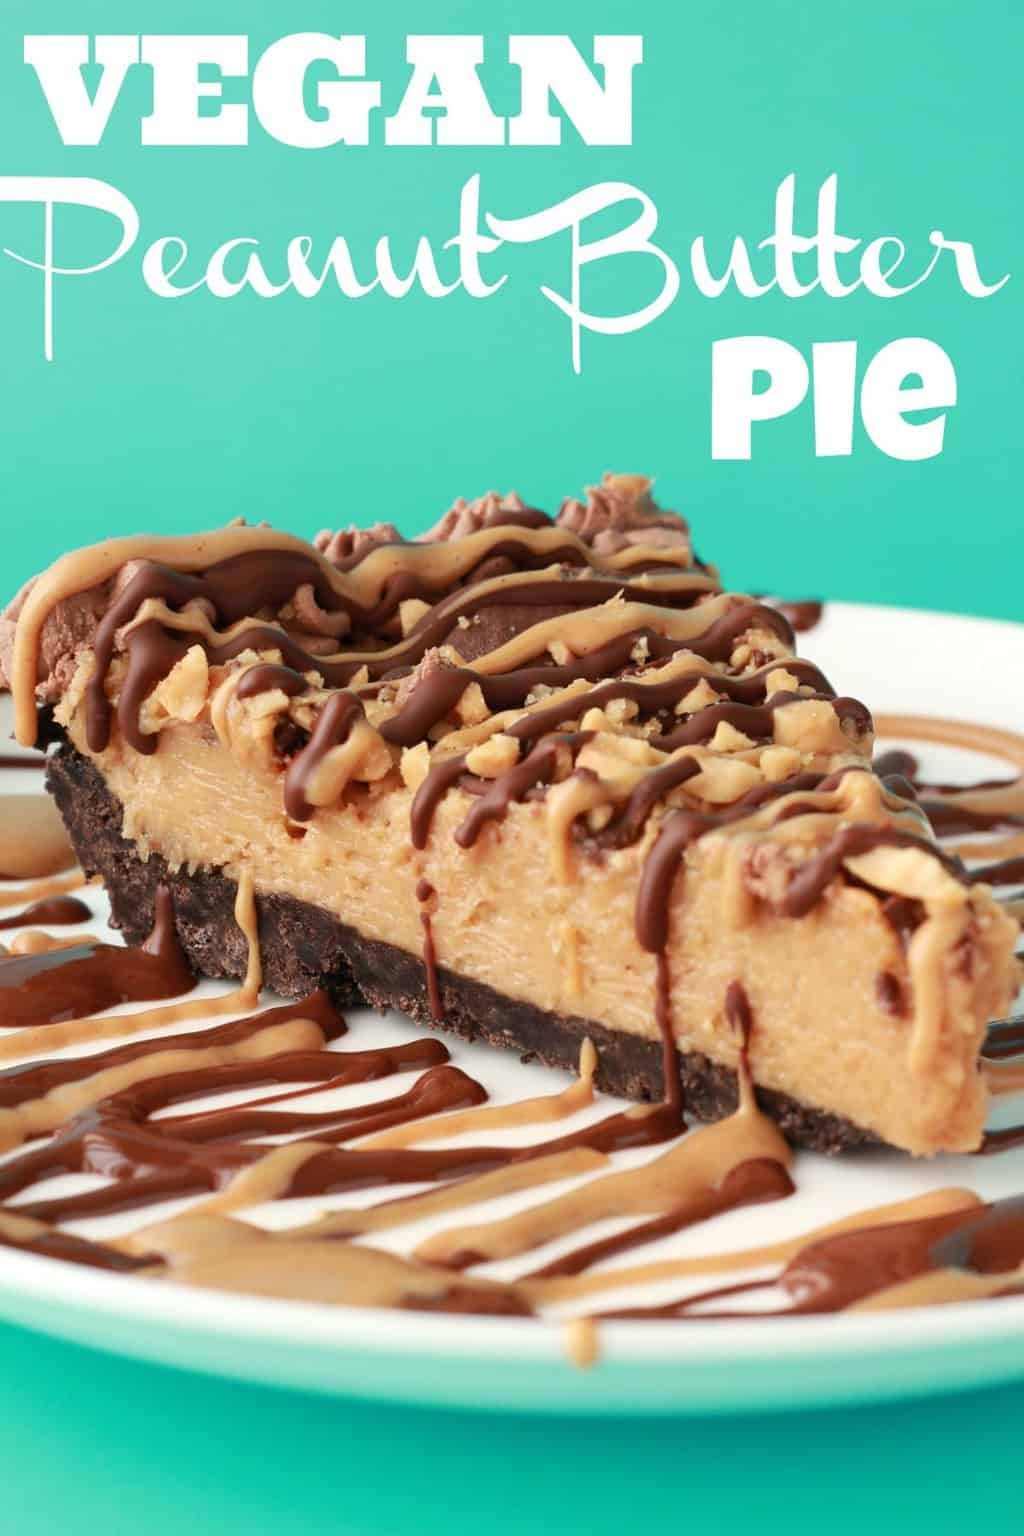 A slice of vegan peanut butter pie on a white plate.